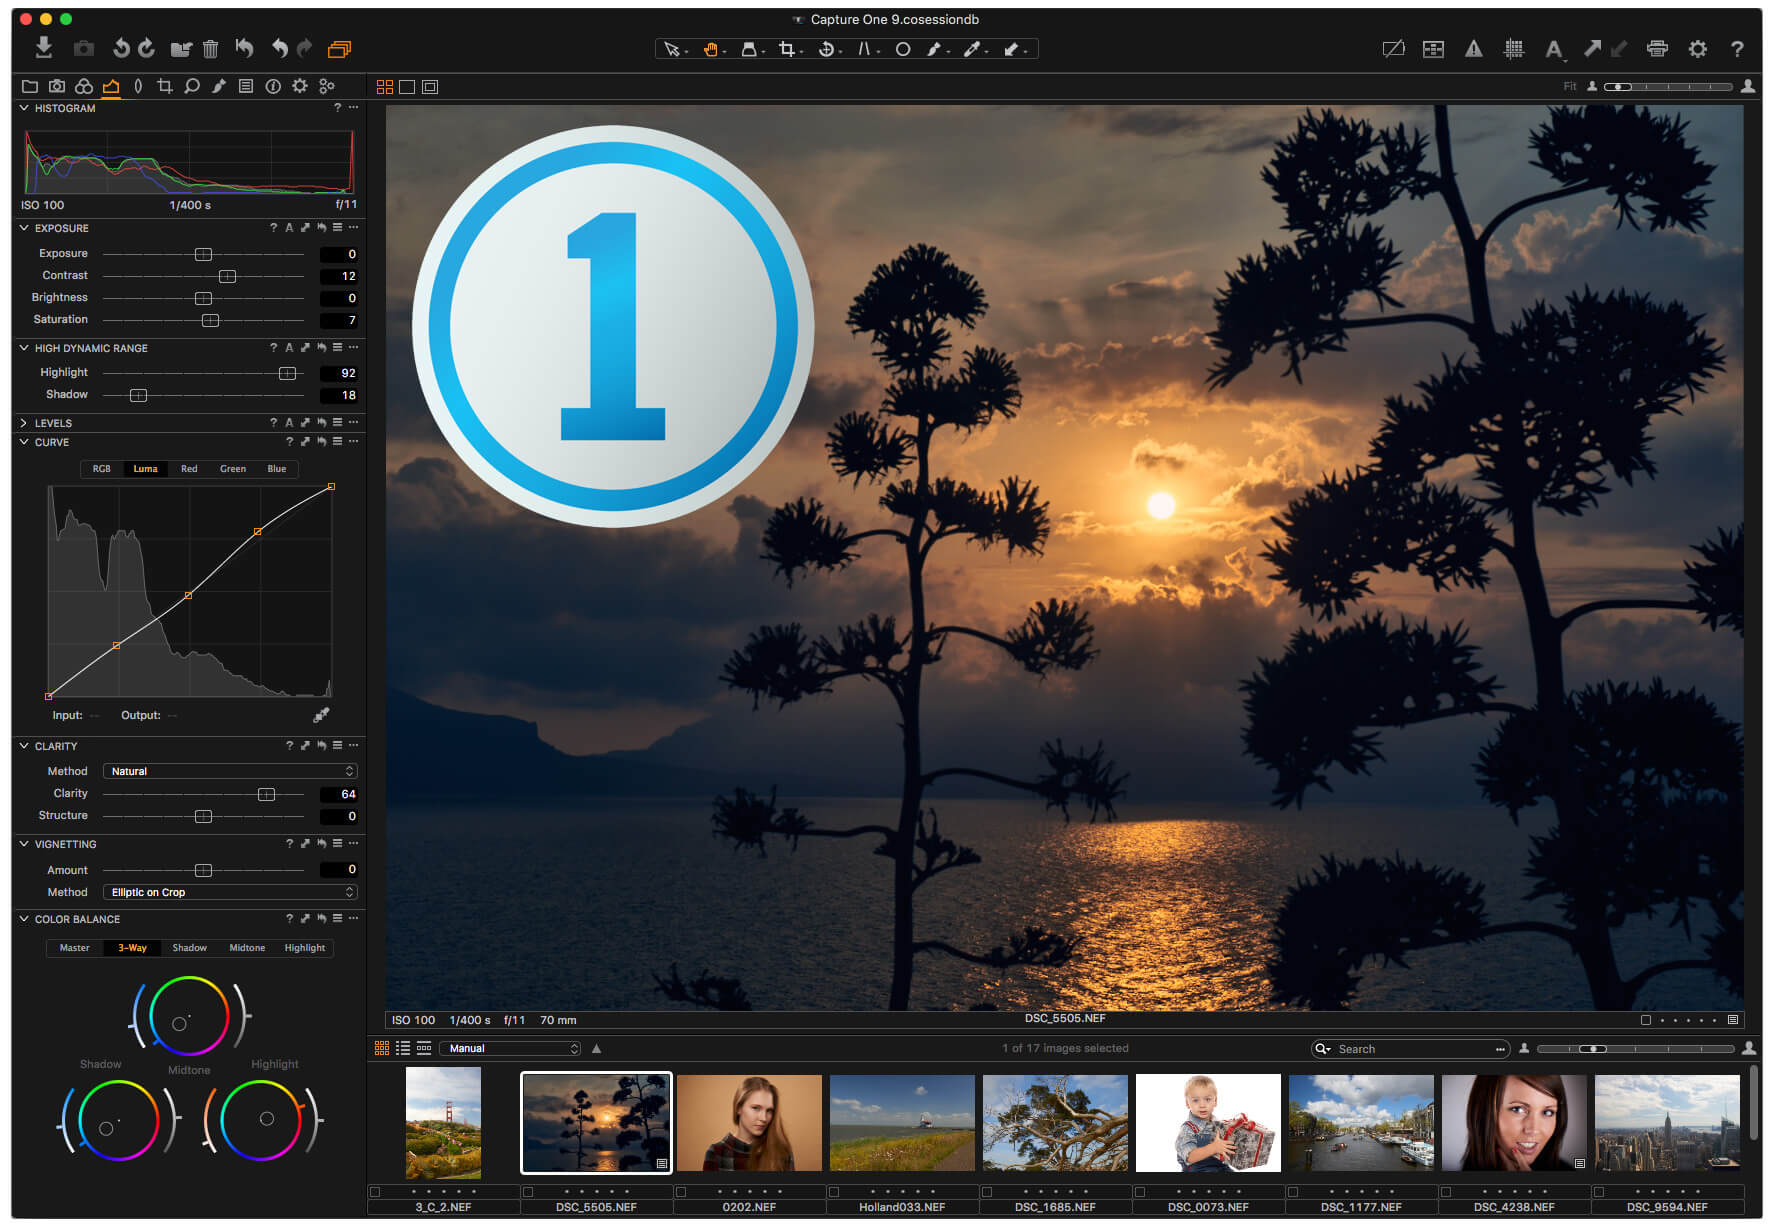 《Capture One 10.2.1 for Mac 破解版 RAW工作流程软件》